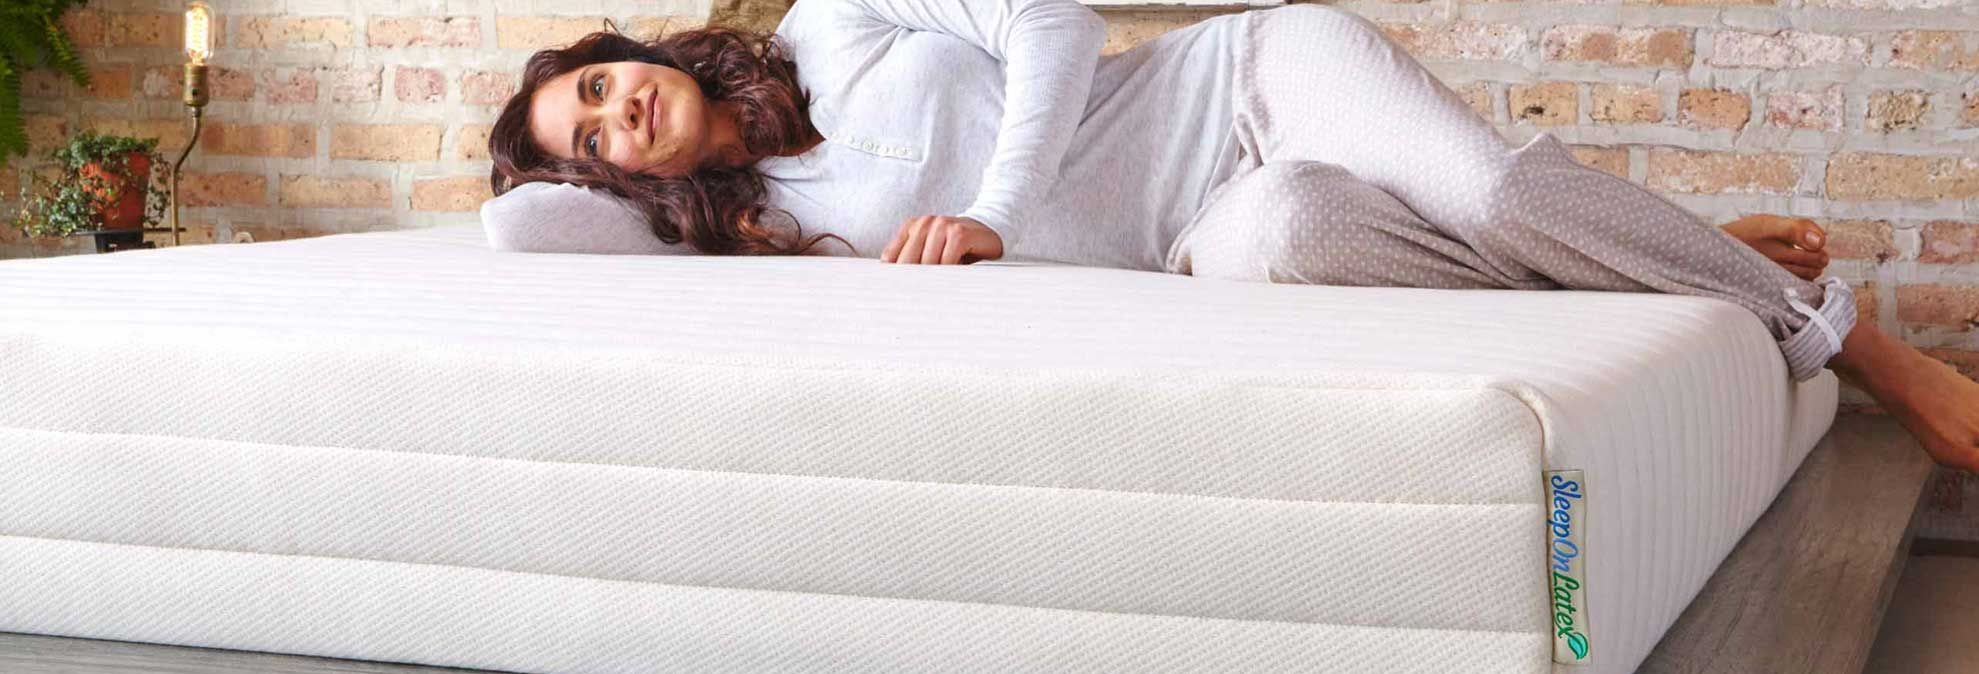 find the best mattress for your size and sleep style consumer